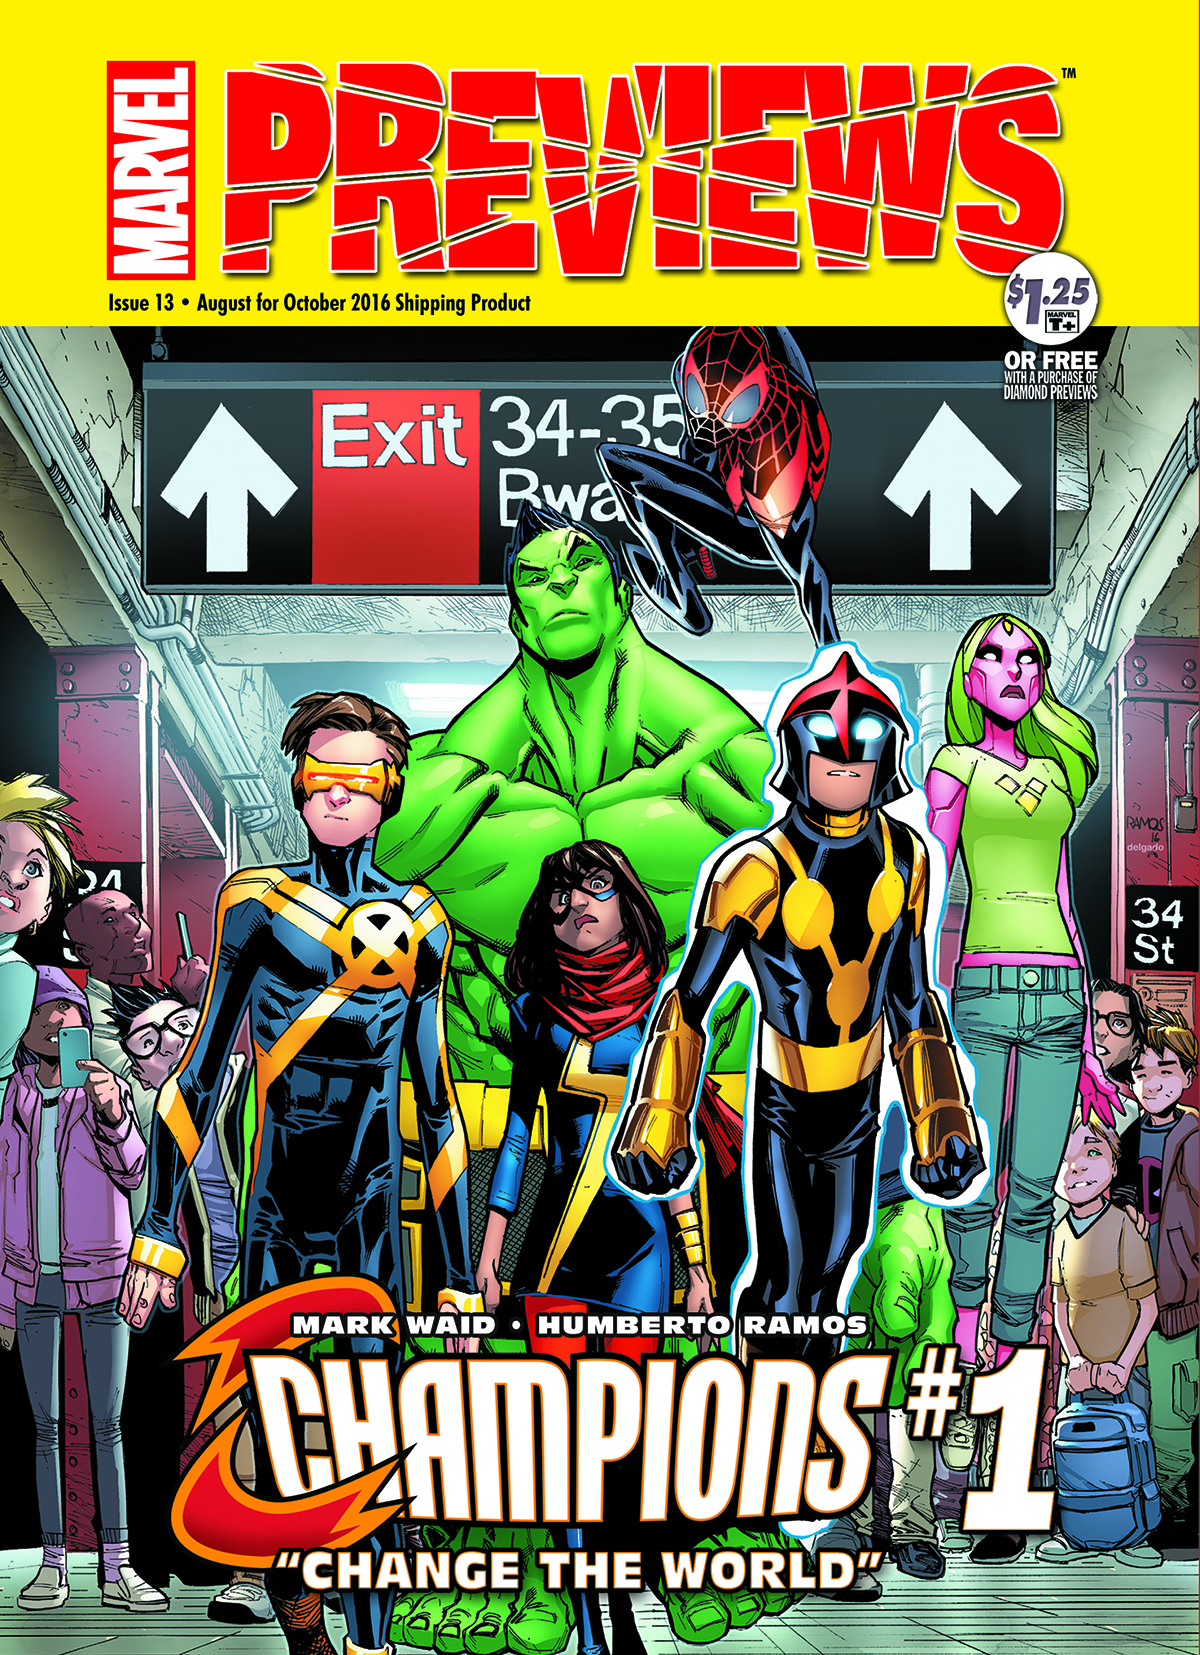 MARVEL PREVIEWS #13 AUGUST 2016 EXTRAS (Net)